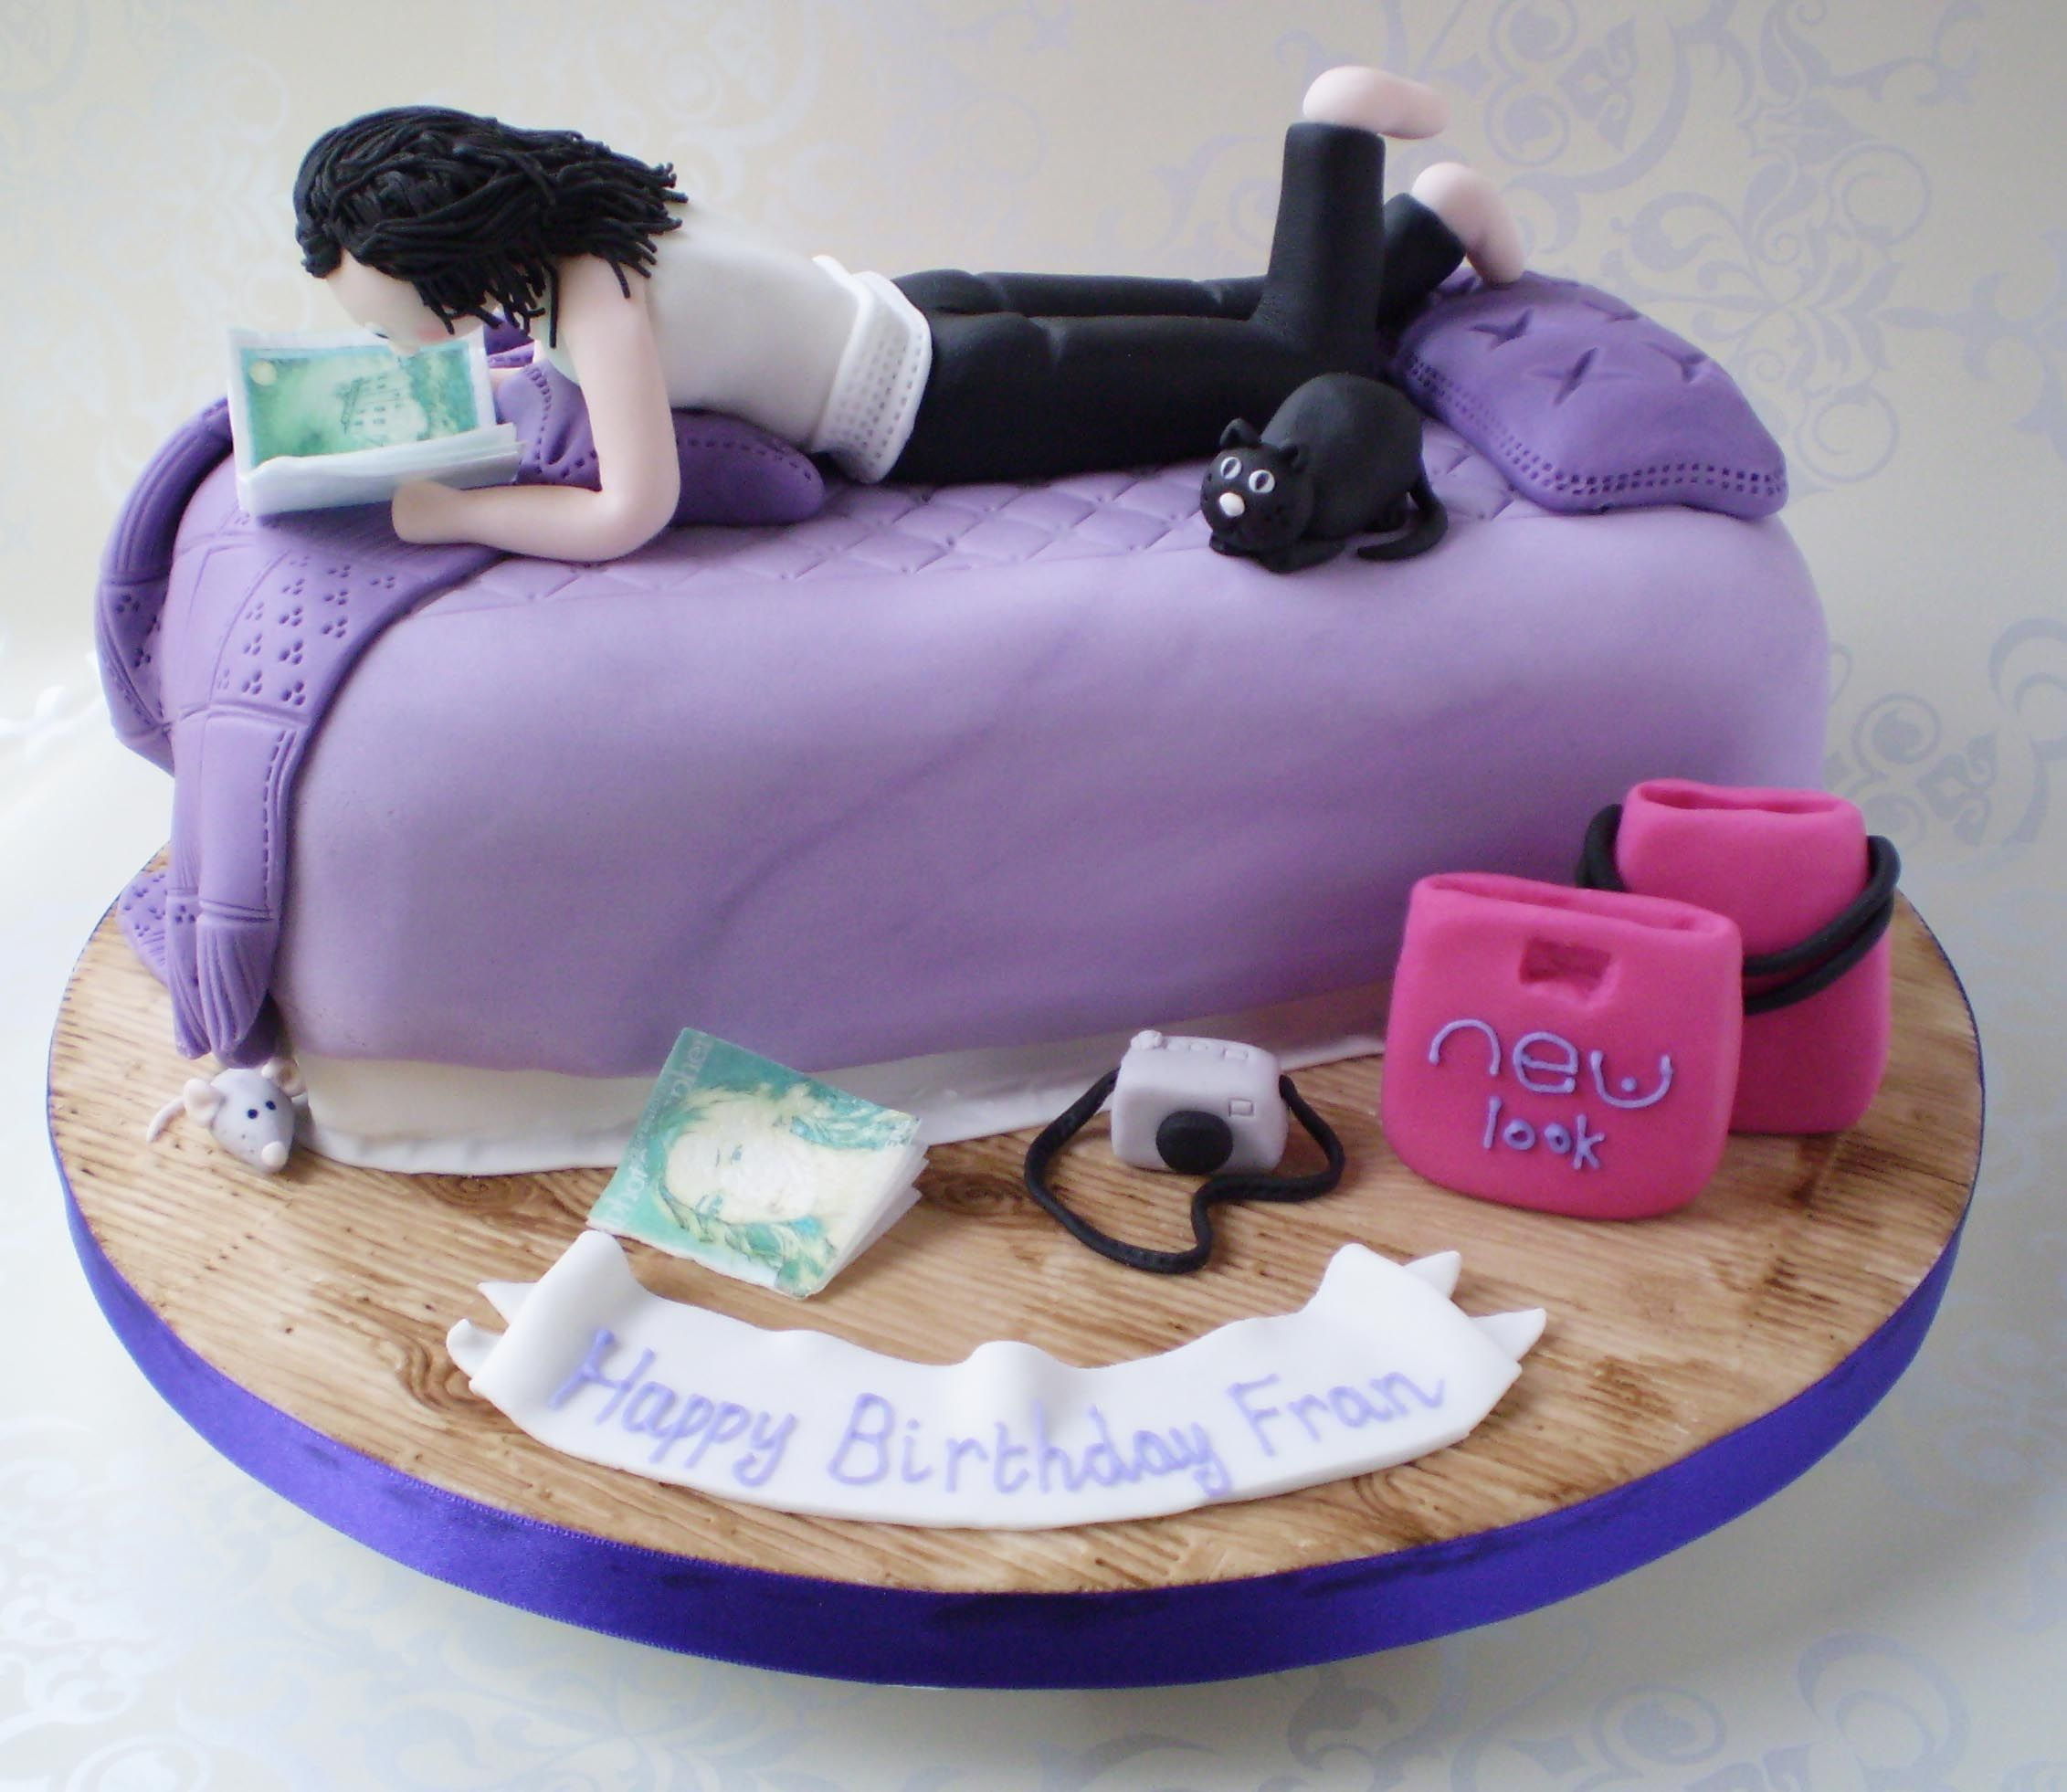 Teenagers Bedroom Birthday Cake Cakepins